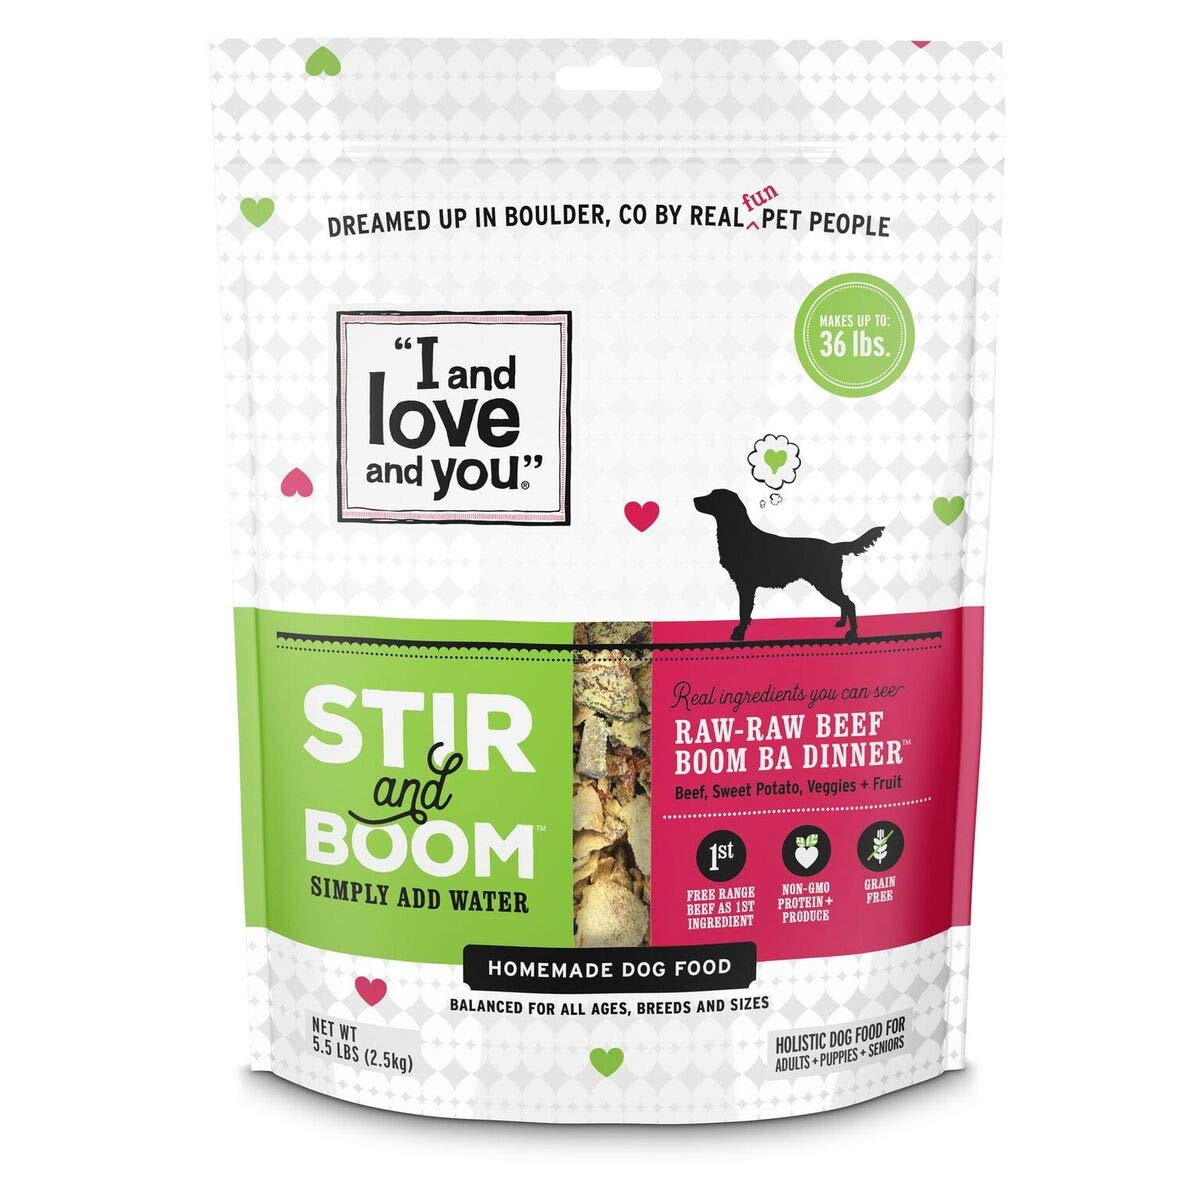 I and love and you, Stir & Boom, Raw Raw Beef Boom, Ba' Homemade Freeze Dried, Grain Free Dehydrated Dog Food, 5.5 LB – Makes 36 lbs. of Wet Food (Packaging May Vary)